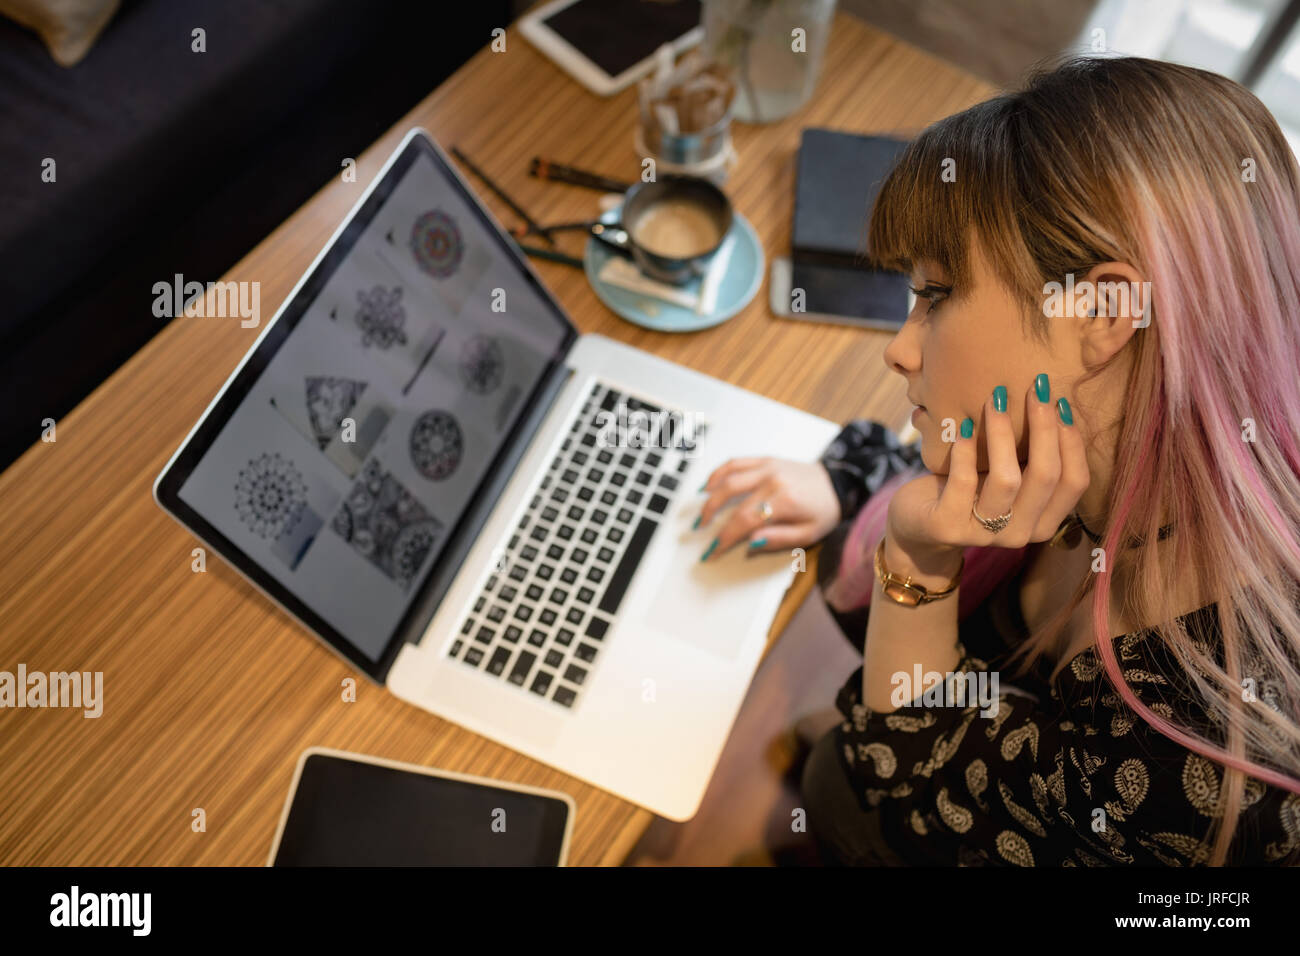 Beautiful woman using laptop at table in cafe - Stock Image